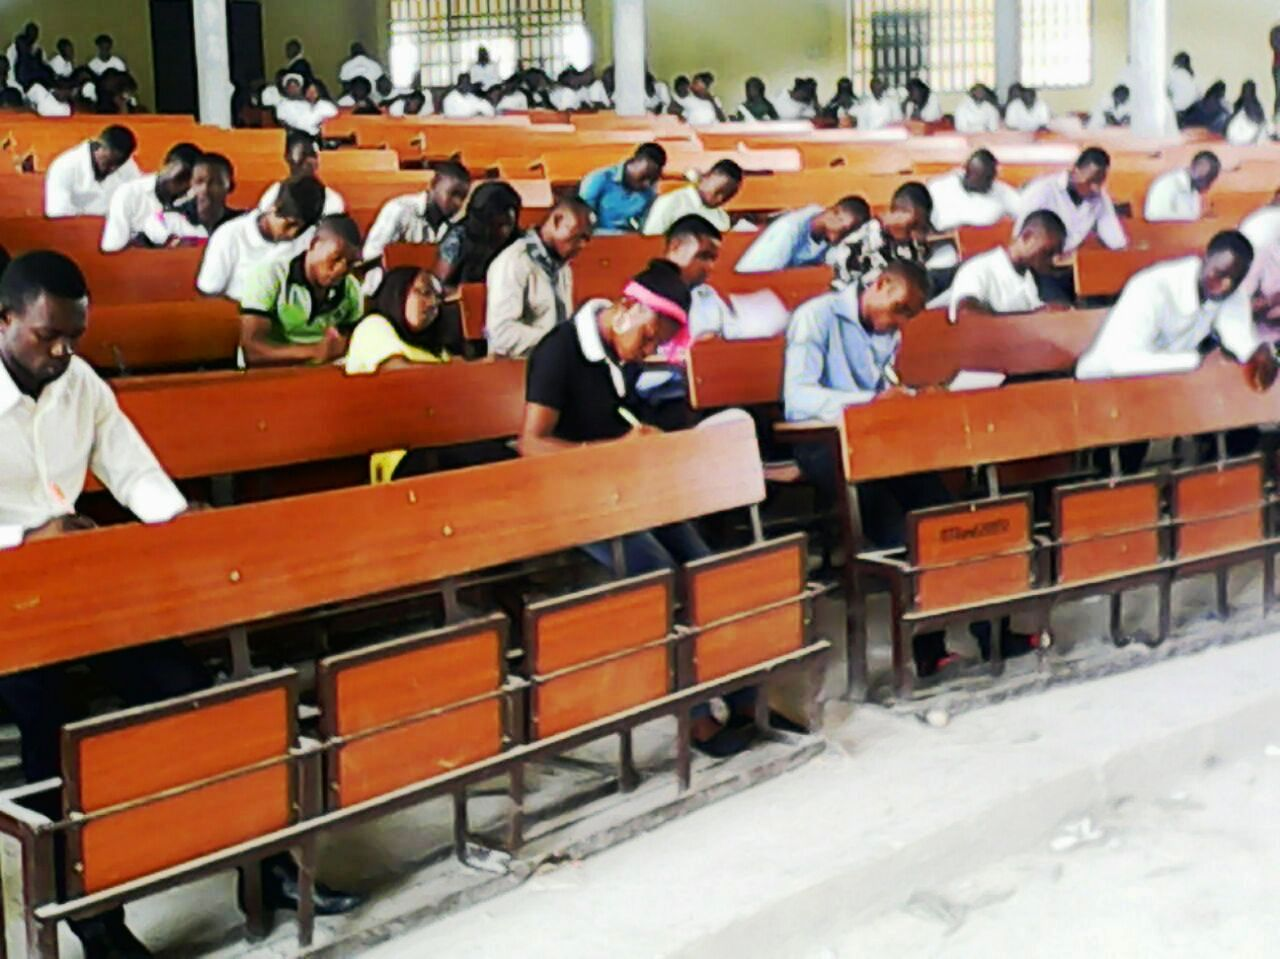 The intending COE Akamkpa Students Union leaders during the aptitude test